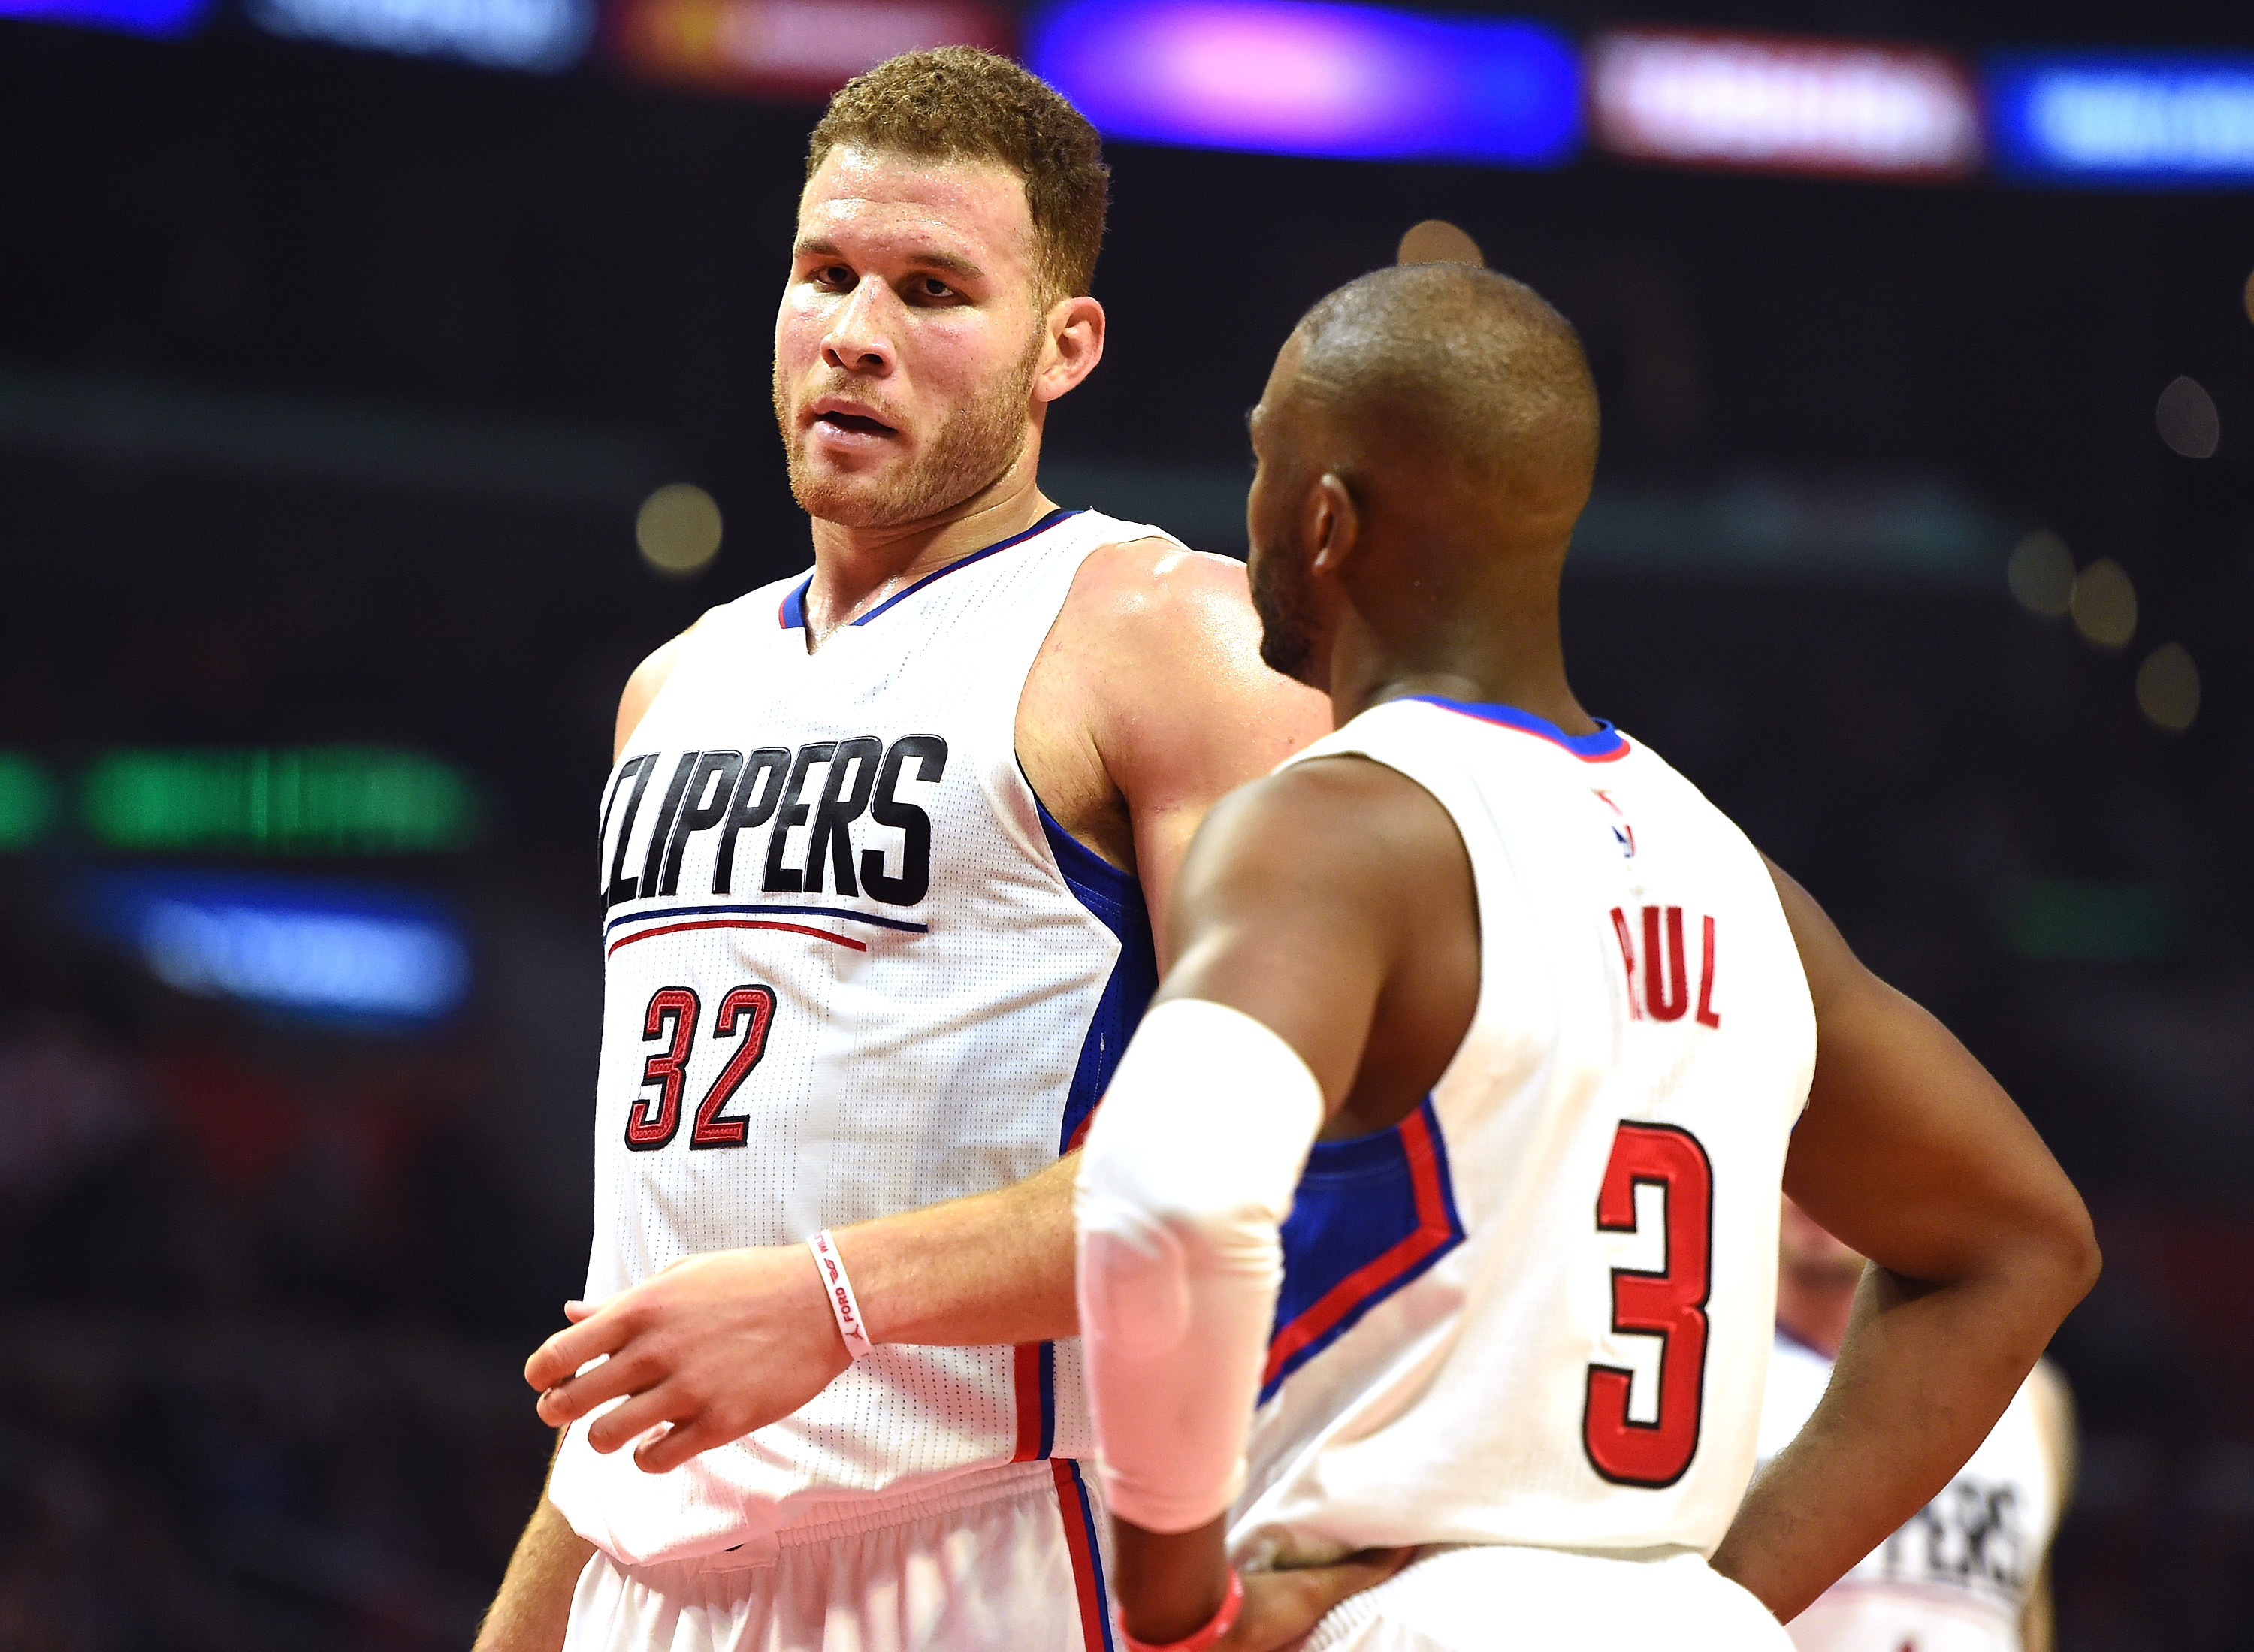 Los Angeles Clippers Free Agency: Is Chris Paul or Blake Griffin more likely to leave?